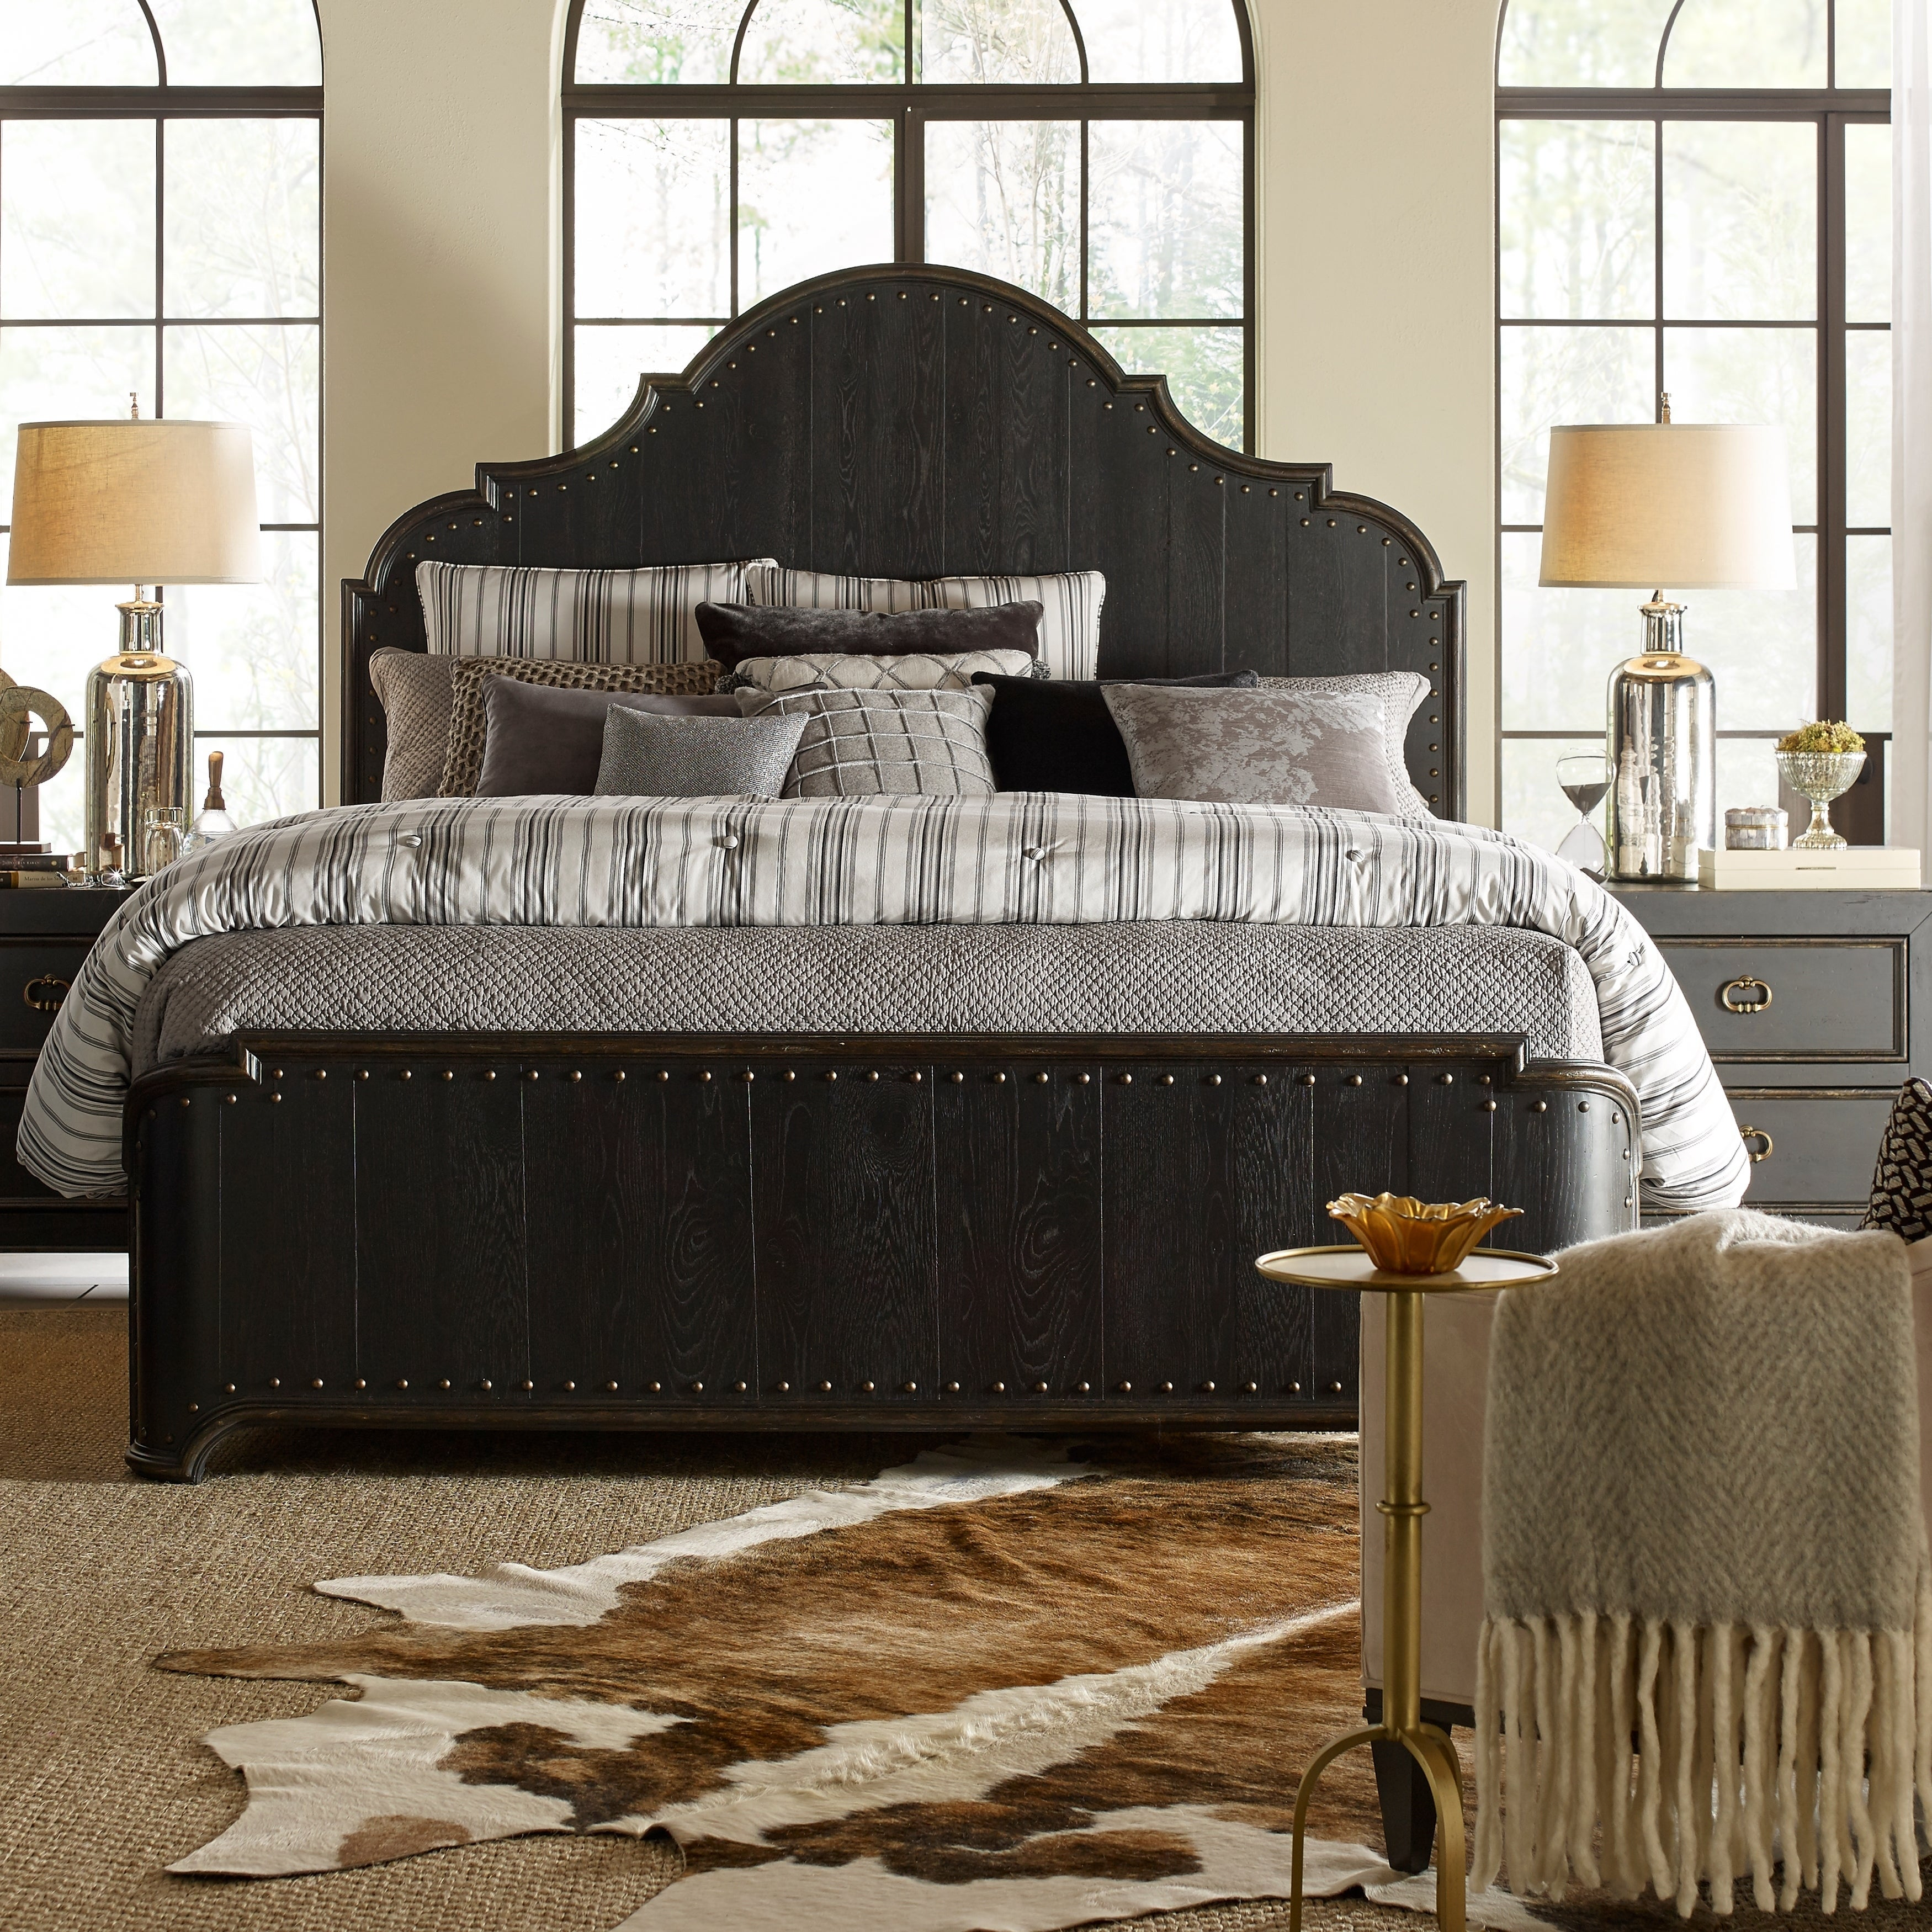 Bishop Hills Traditional King Curved Panel Bed